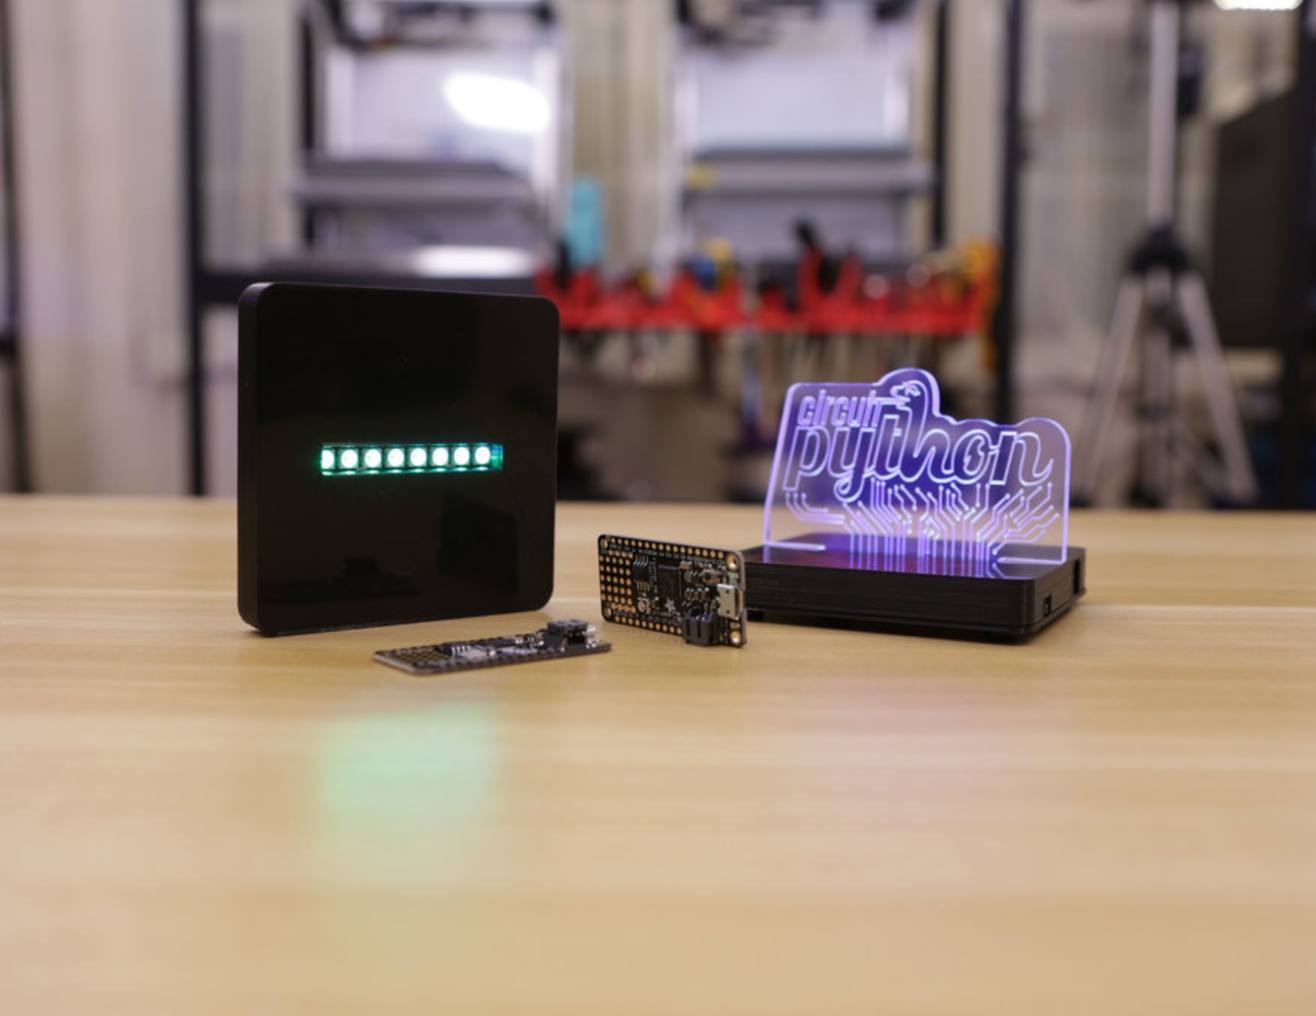 Capture d'écran 2017-09-01 à 10.48.44.png Download free STL file LED Acrylic Sign with NeoPixels and Circuit Python • Model to 3D print, Adafruit